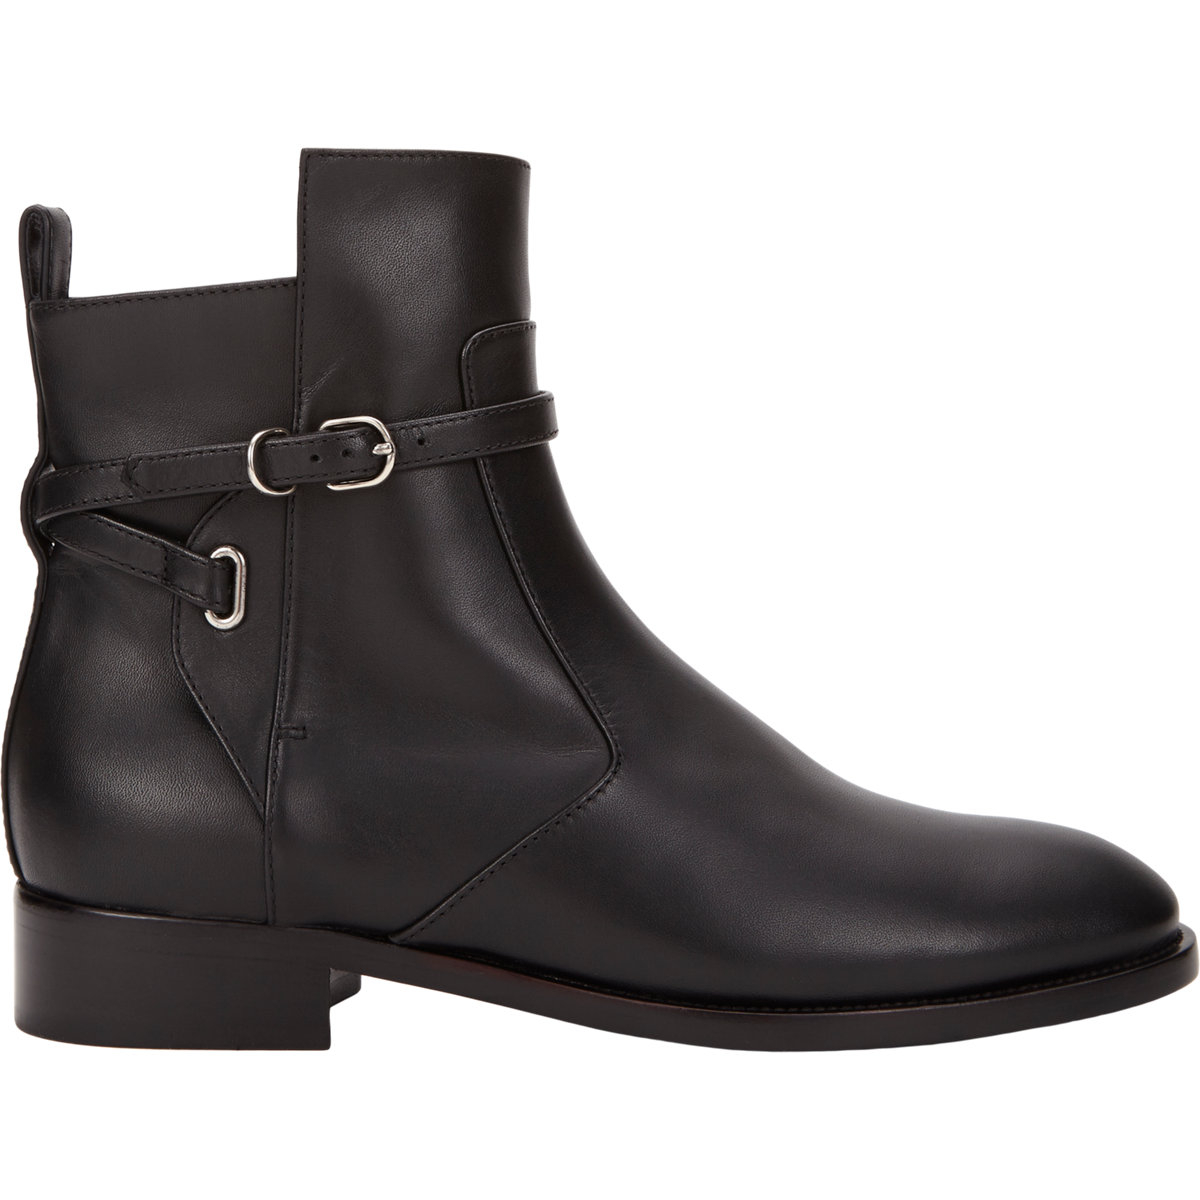 Boots Ankle Women - Yu Boots